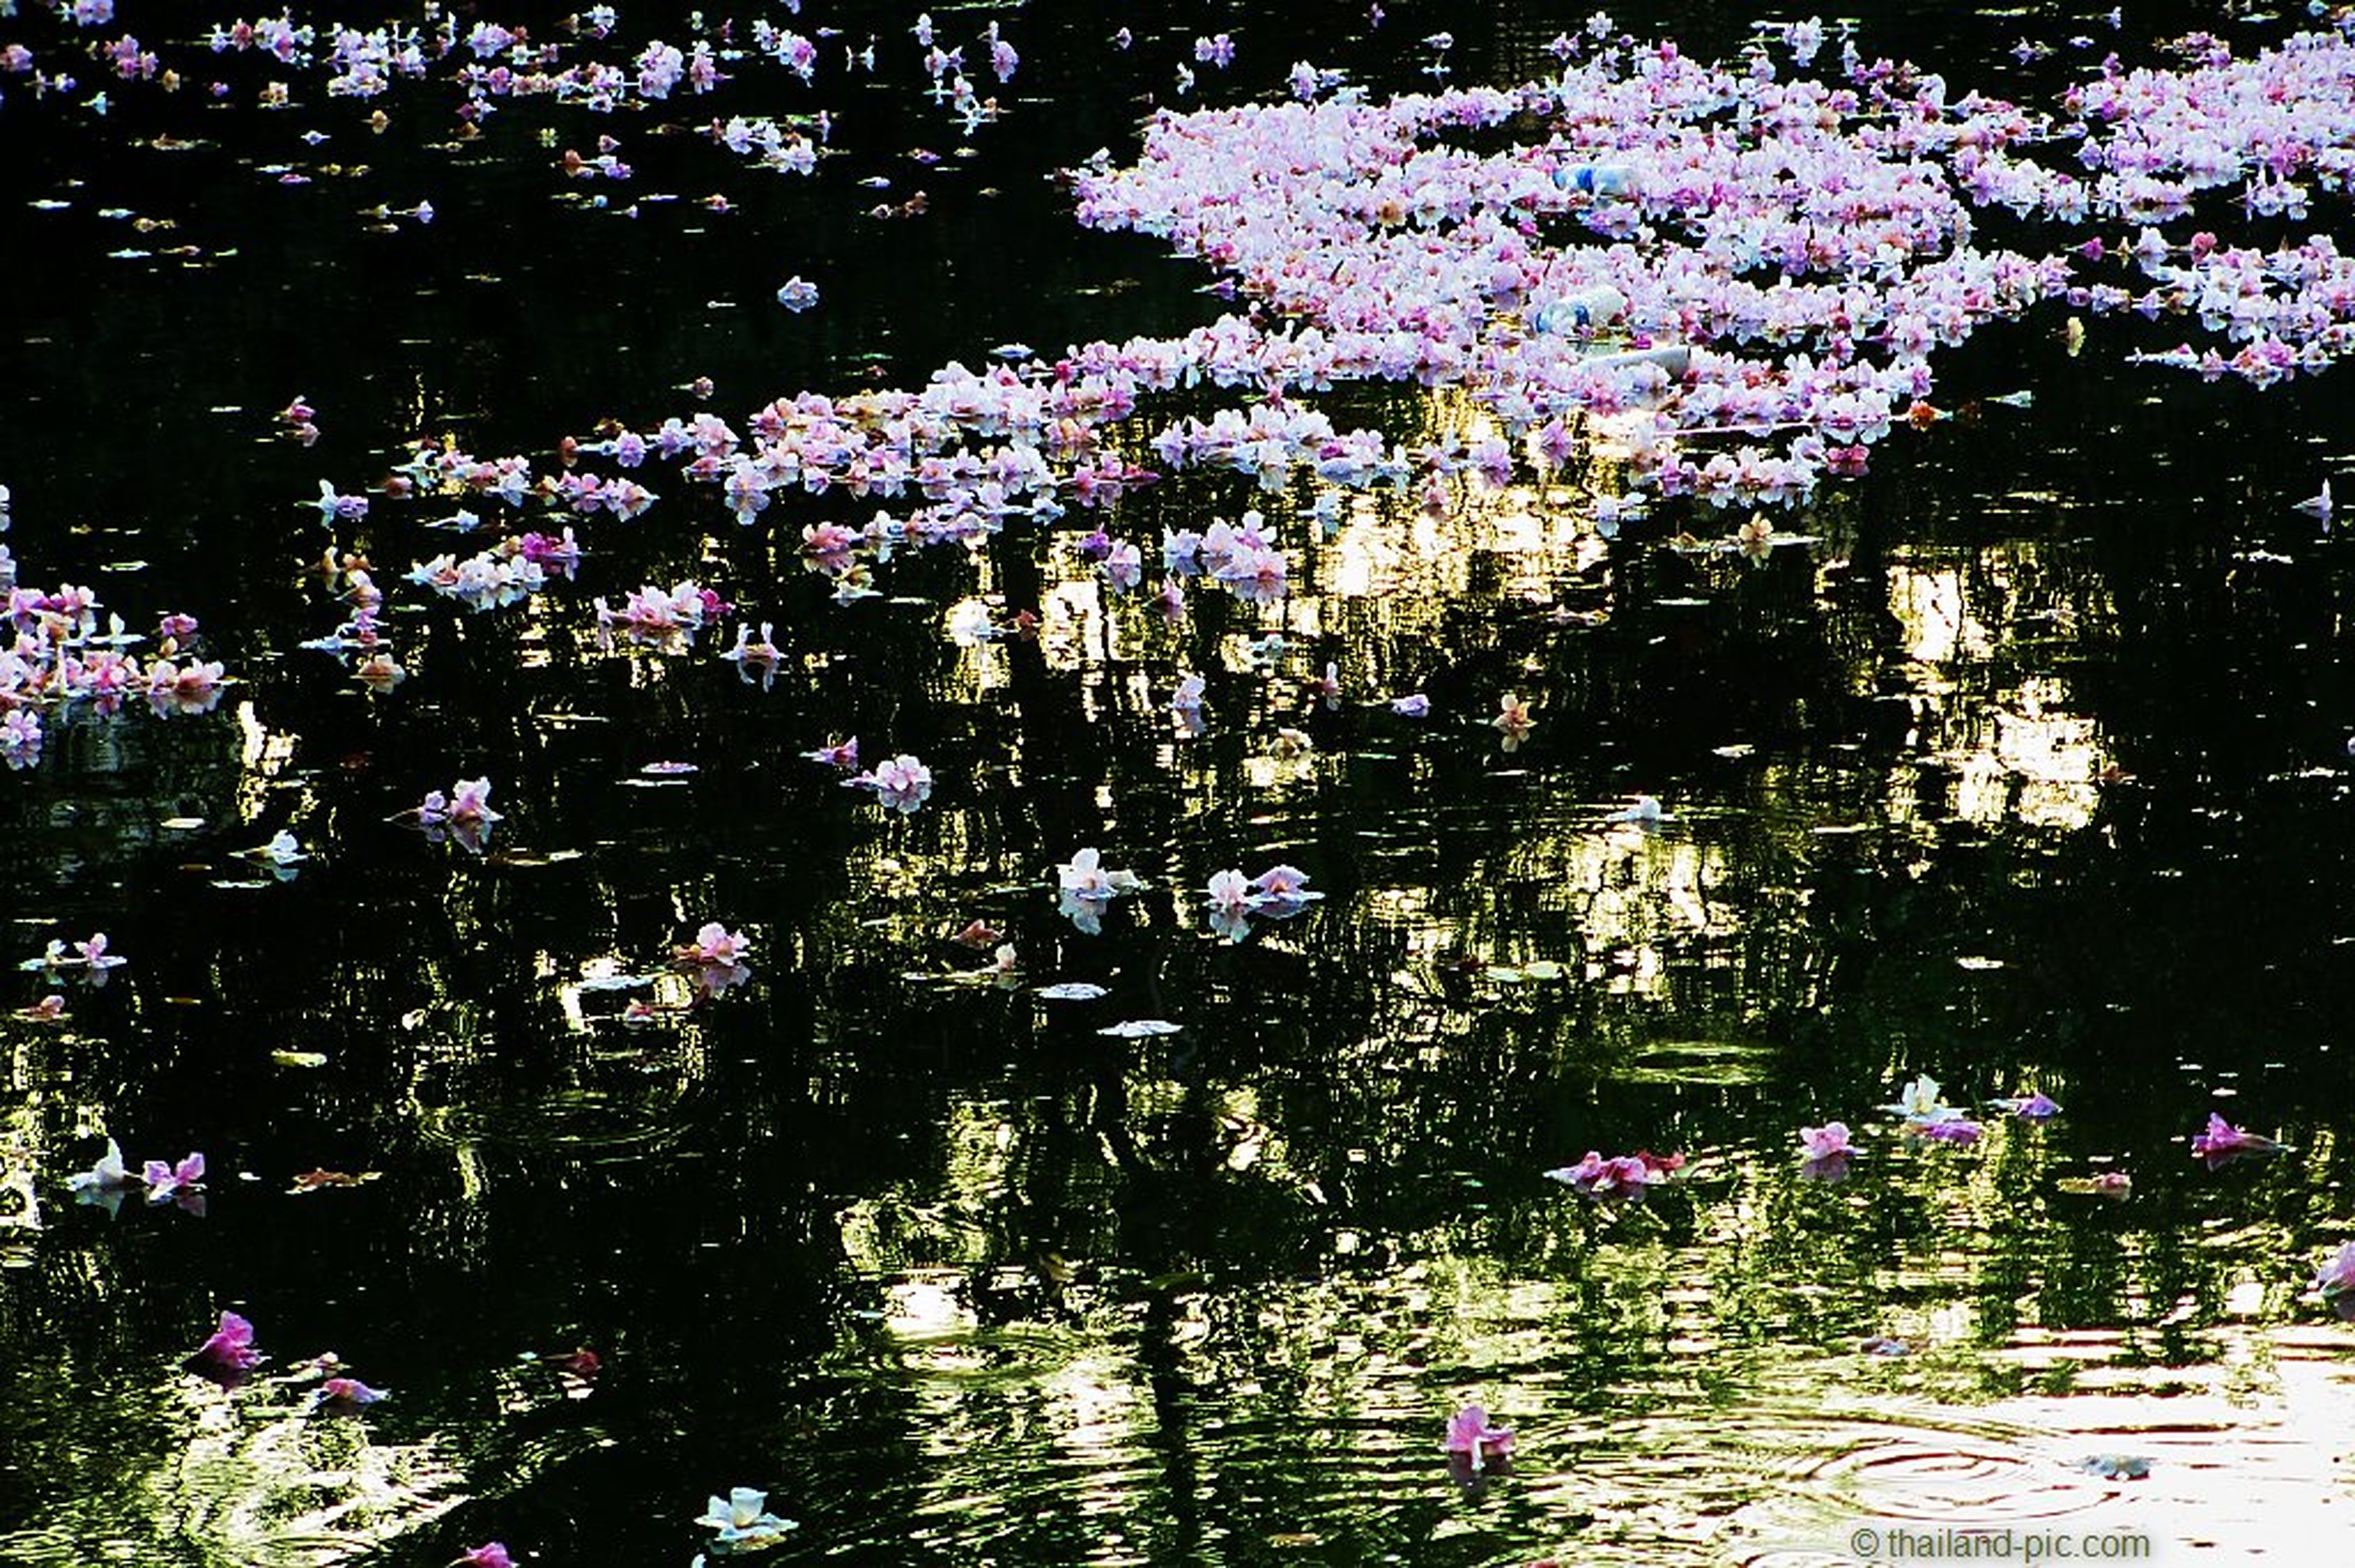 flower, water, growth, freshness, pink color, beauty in nature, nature, fragility, purple, tree, plant, lake, reflection, leaf, petal, blooming, branch, outdoors, day, park - man made space